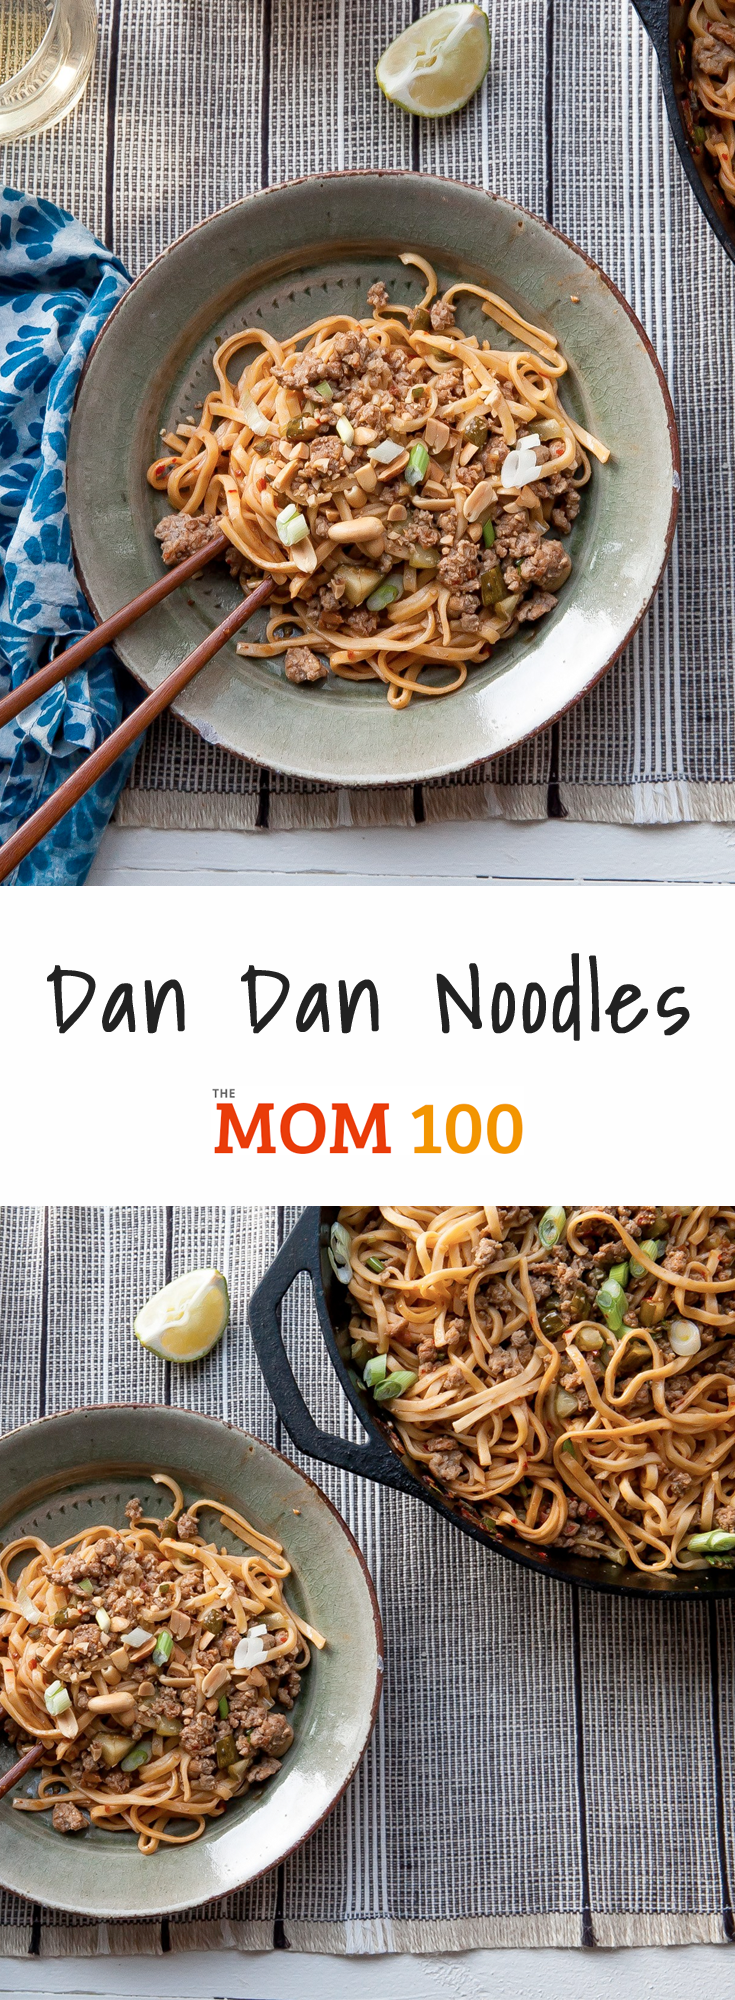 Dan Dan Noodles: A classic Sichuan Lunar New Year dish, spicy, with loads of texture, and good luck built in from the long noodles.